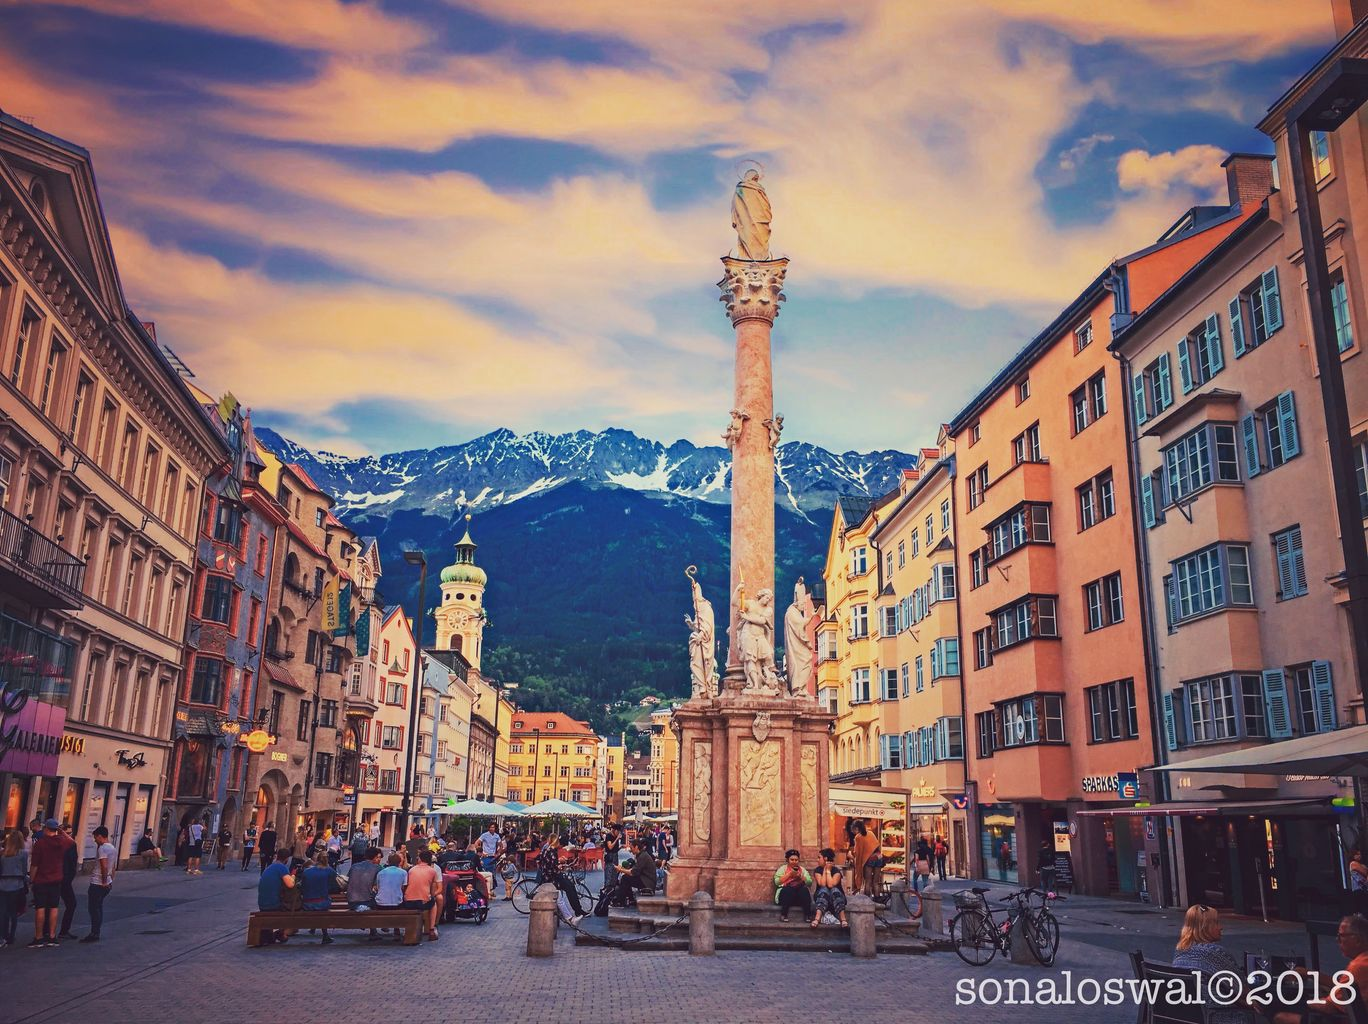 Photo of Innsbruck By Sonal Oswal